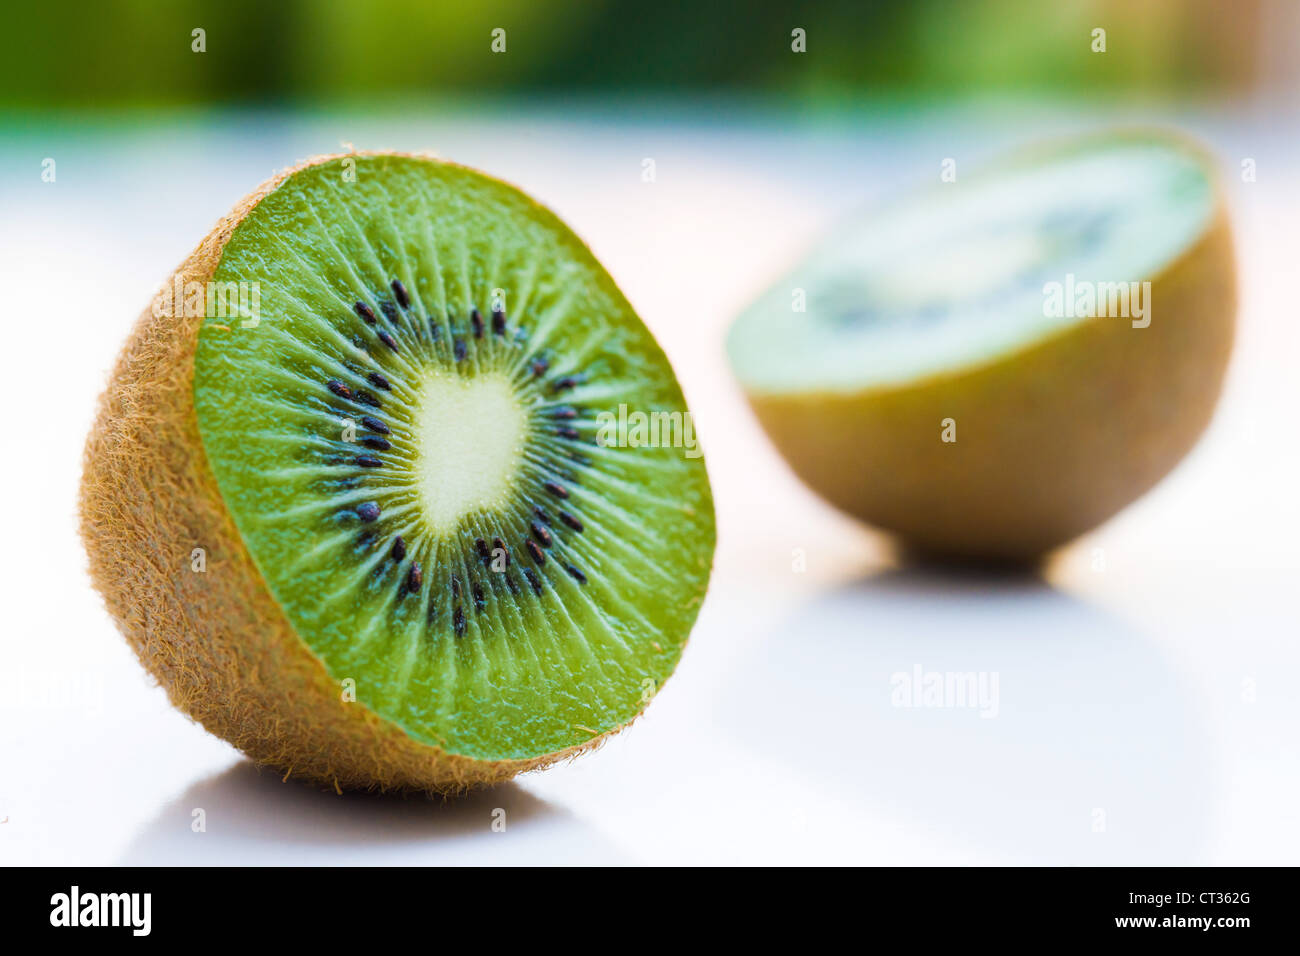 This is an image of Kiwi fruit. - Stock Image